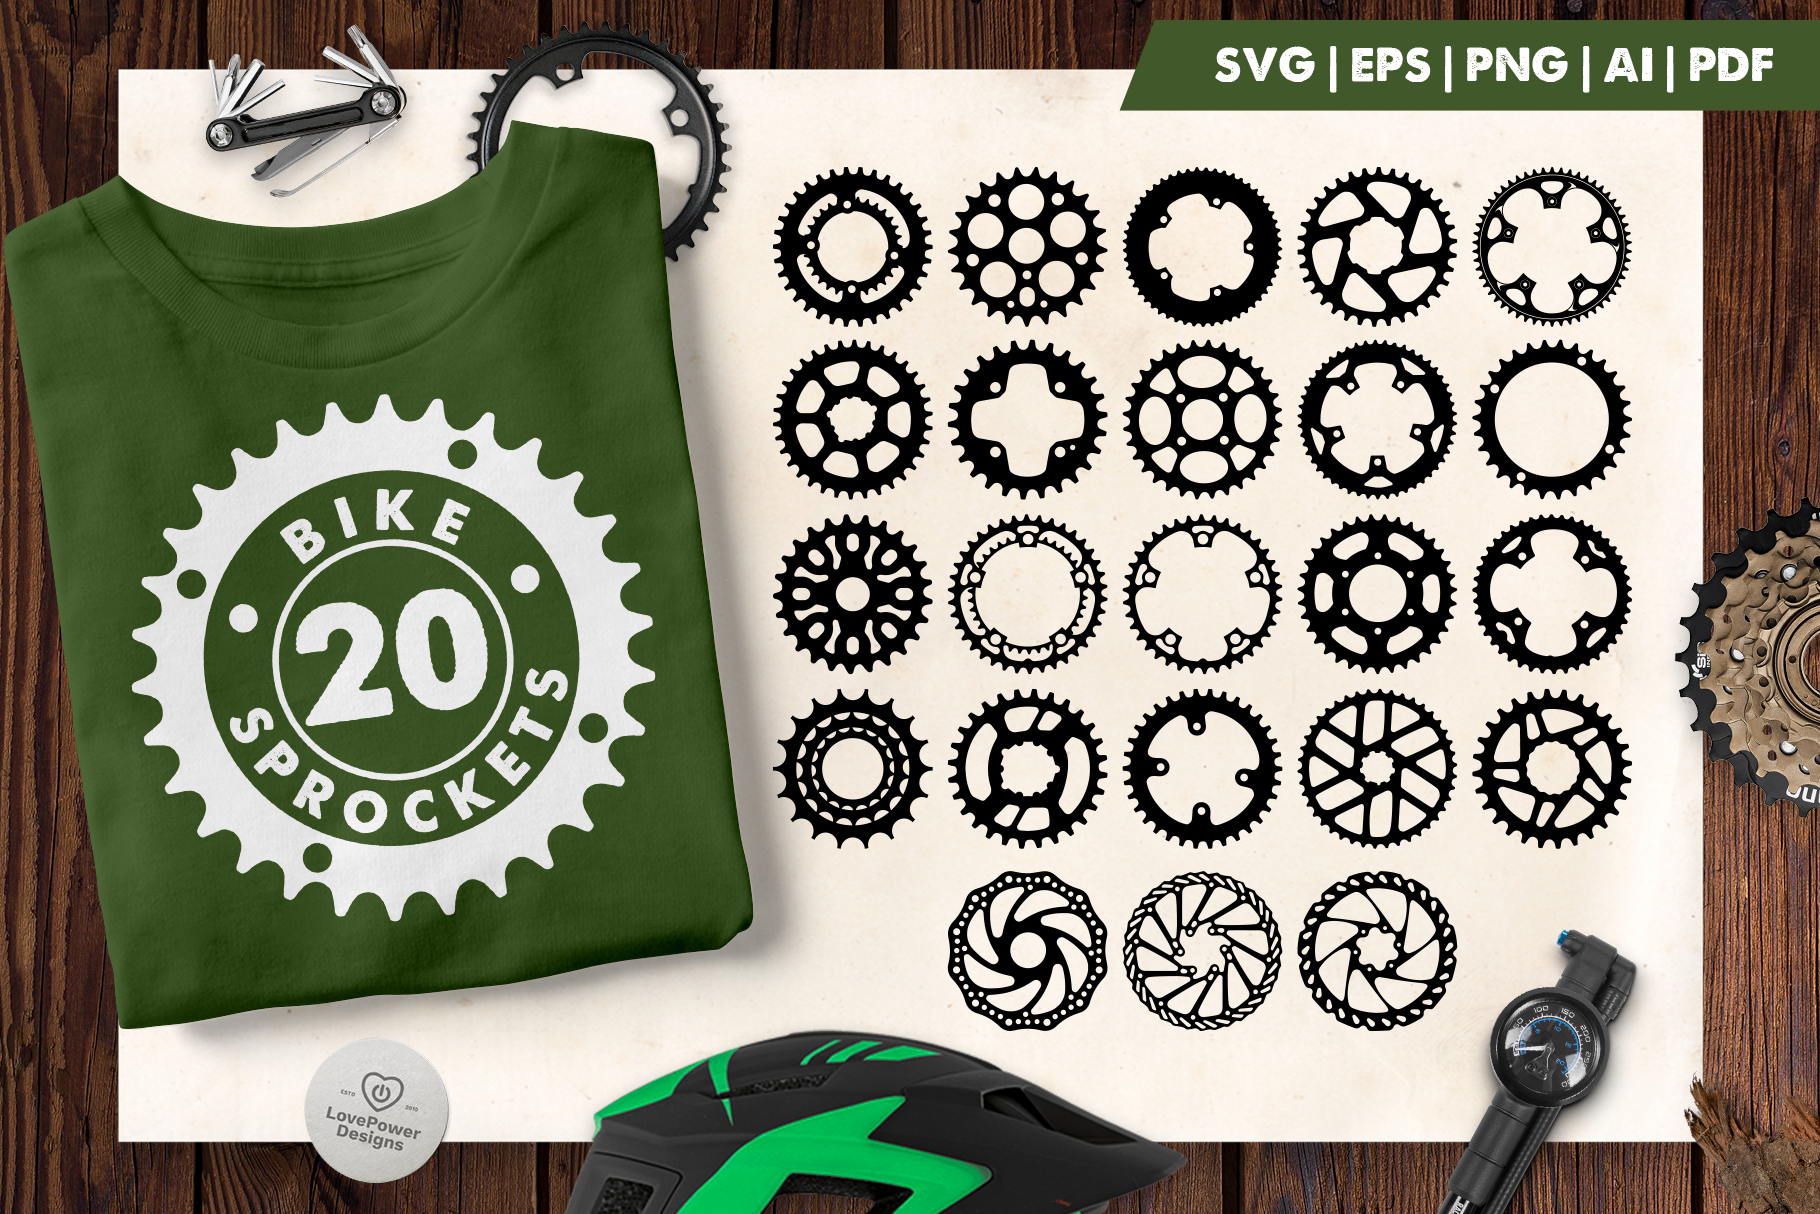 Bike Sprocket SVG | Bike Crank SVG | Bike Gear SVG | Gear